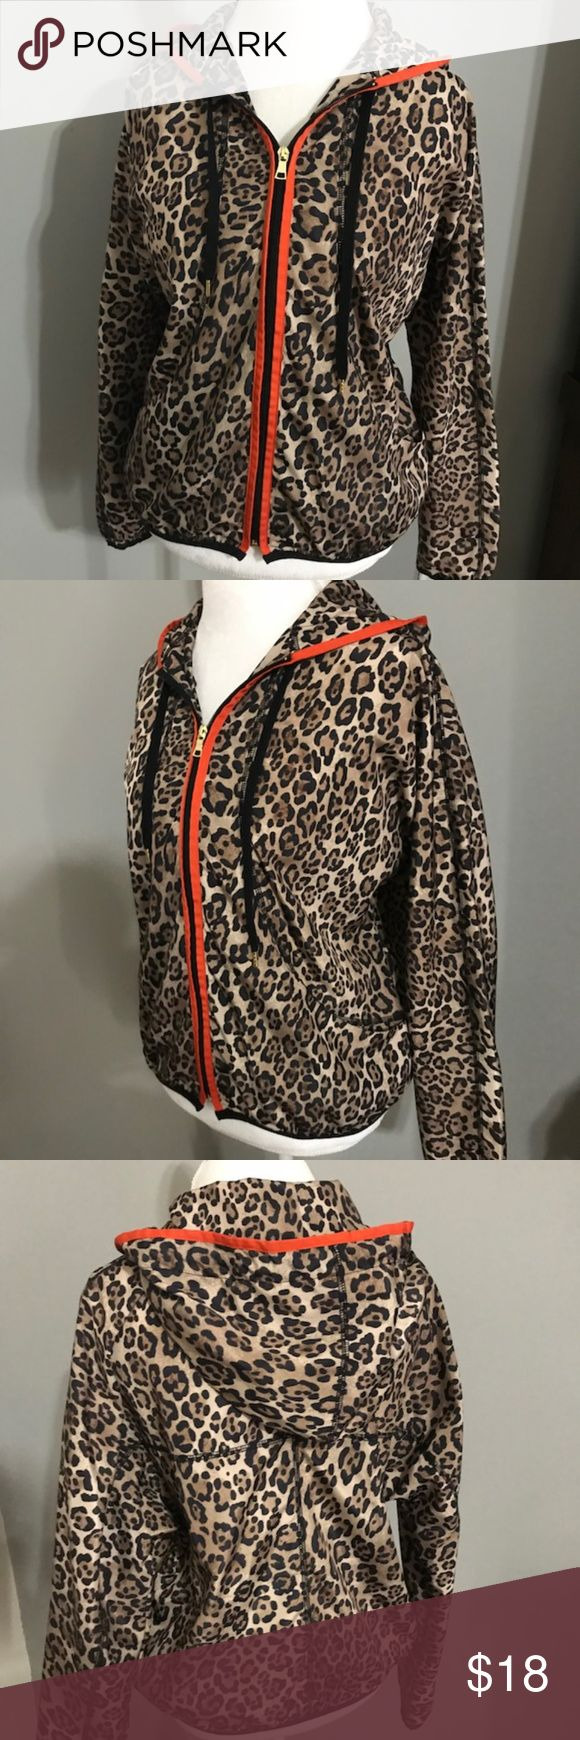 Ruby Rd. Animal Print Light Weight Jacket Size M Super cute light weight animal print zip up jacket with orange trim in great shape! This jacket has a draw string hood and 2 front pockets. Made of 100% polyester (swishy material). Length is 22.5 inches and across the chest is 23.5 inches. Ruby Rd. Jackets & Coats